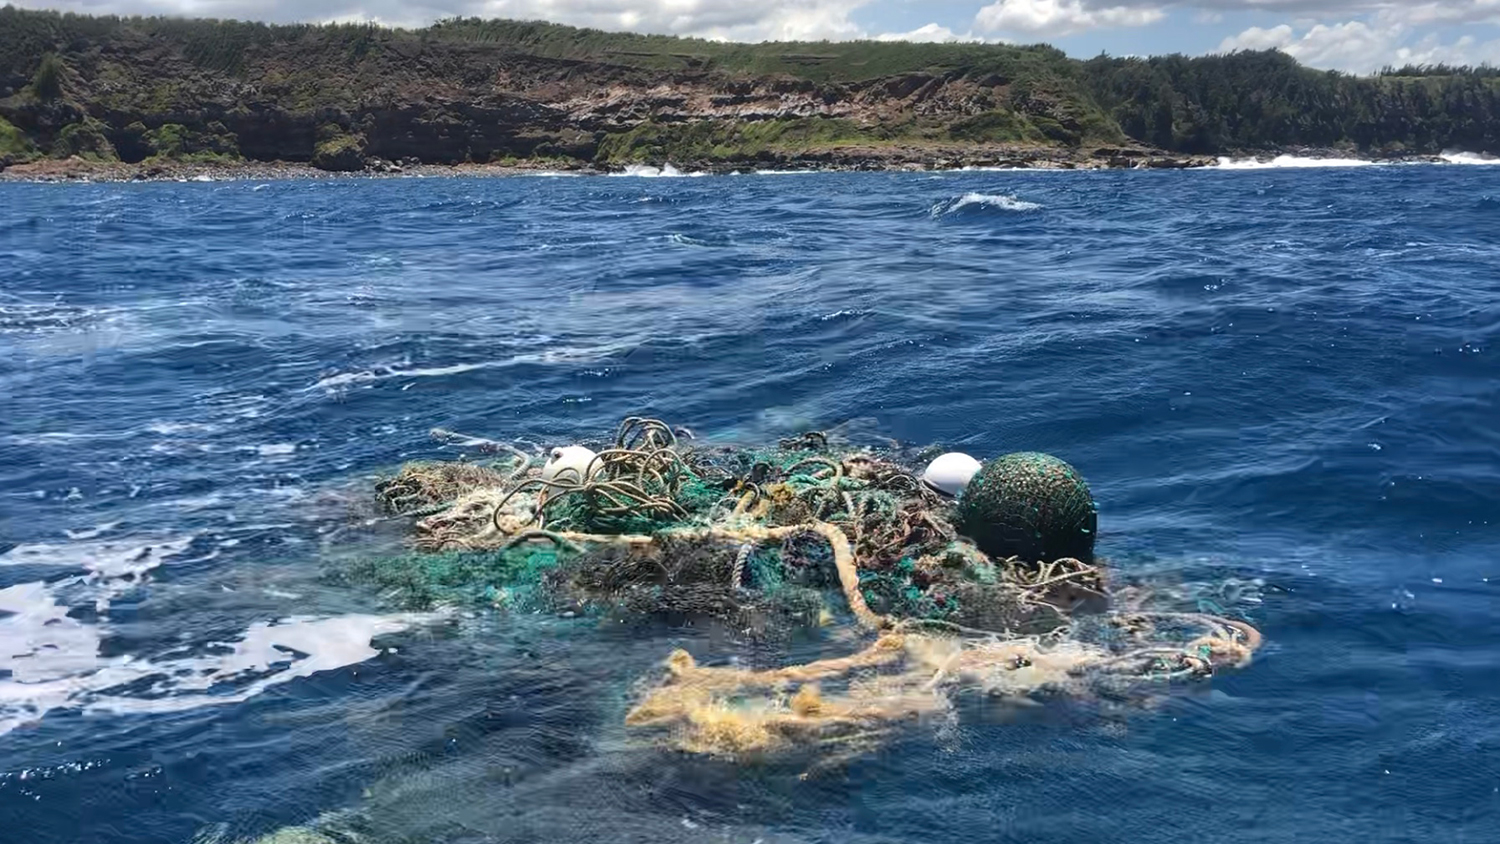 The ghost net and tracker (white buoy with blue stripe) were finally located by Parley and Love the Sea off the north shore of Maui.